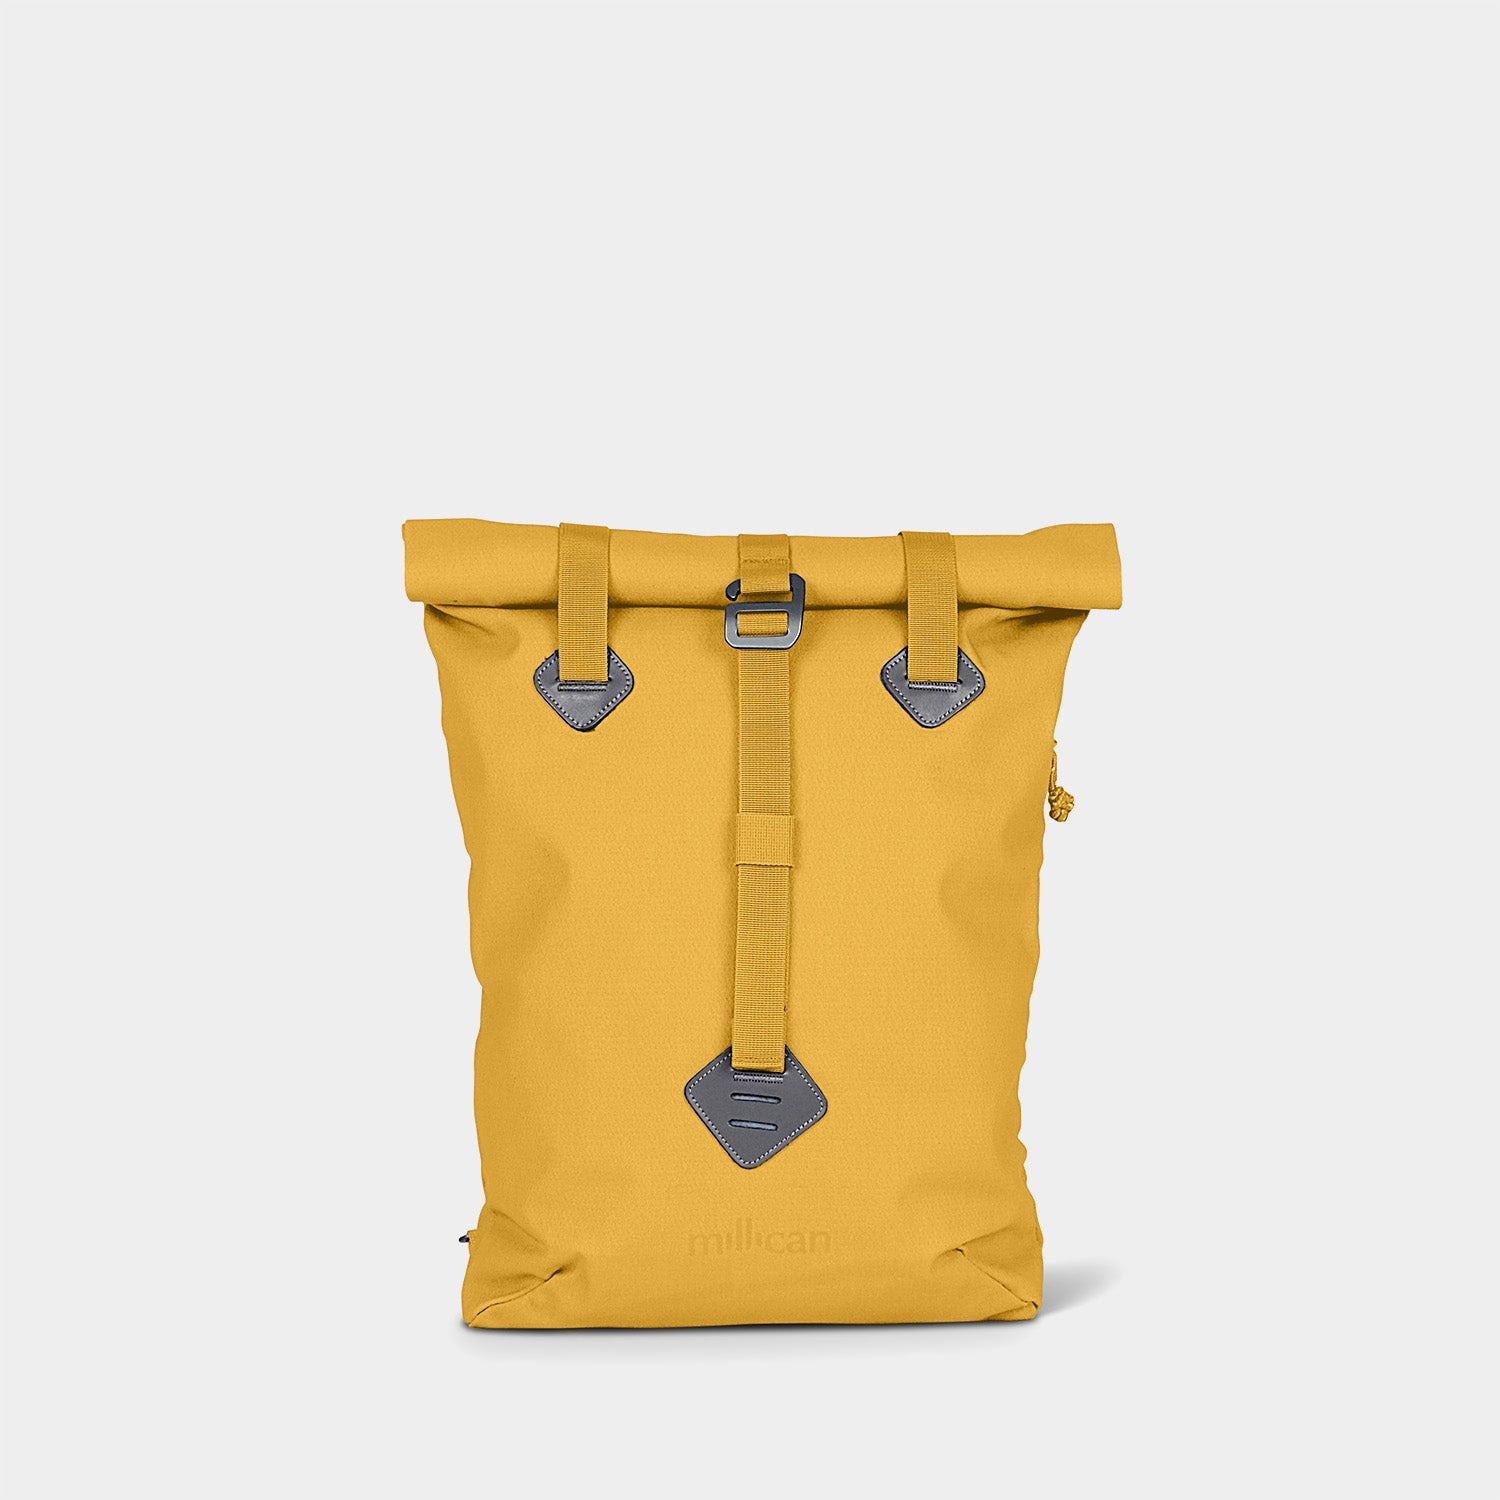 Millican 'Tinsley The Tote Pack' 14L Gorse